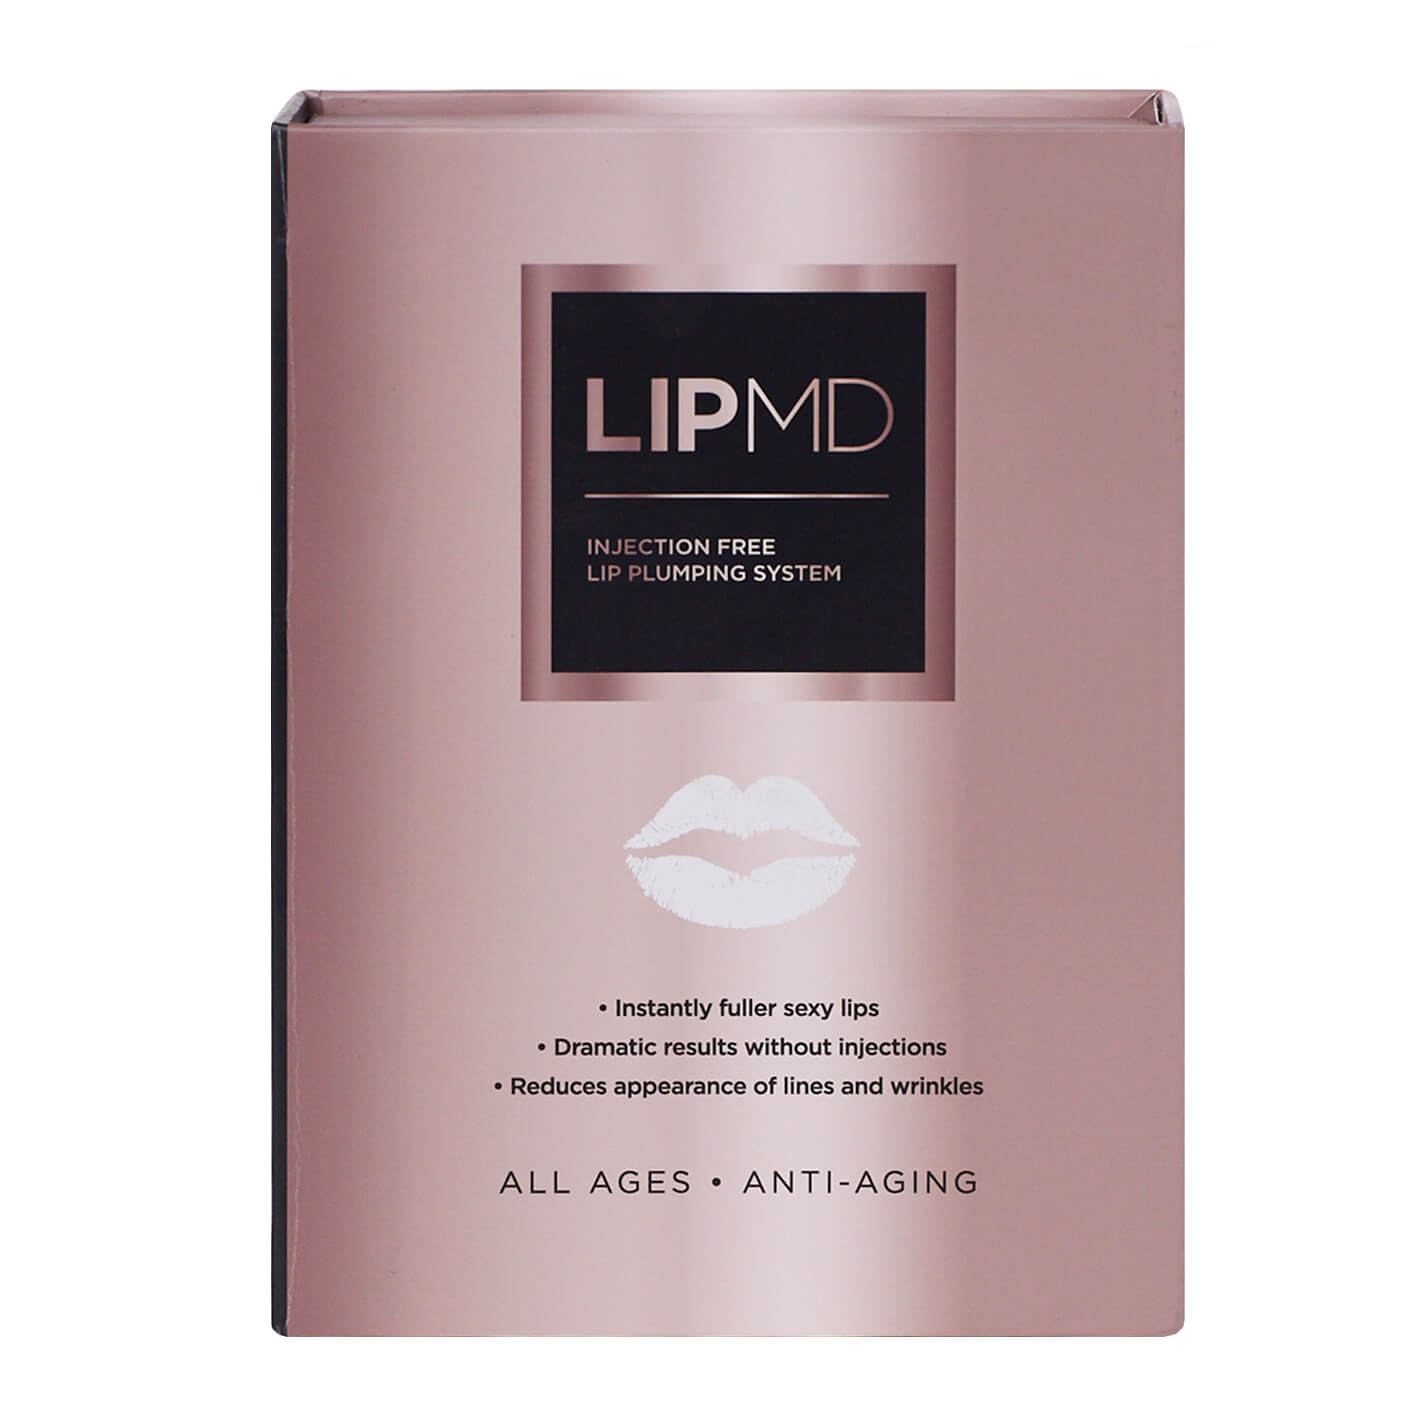 SAVE 40% + FREE Lip Plumping Serum Gift